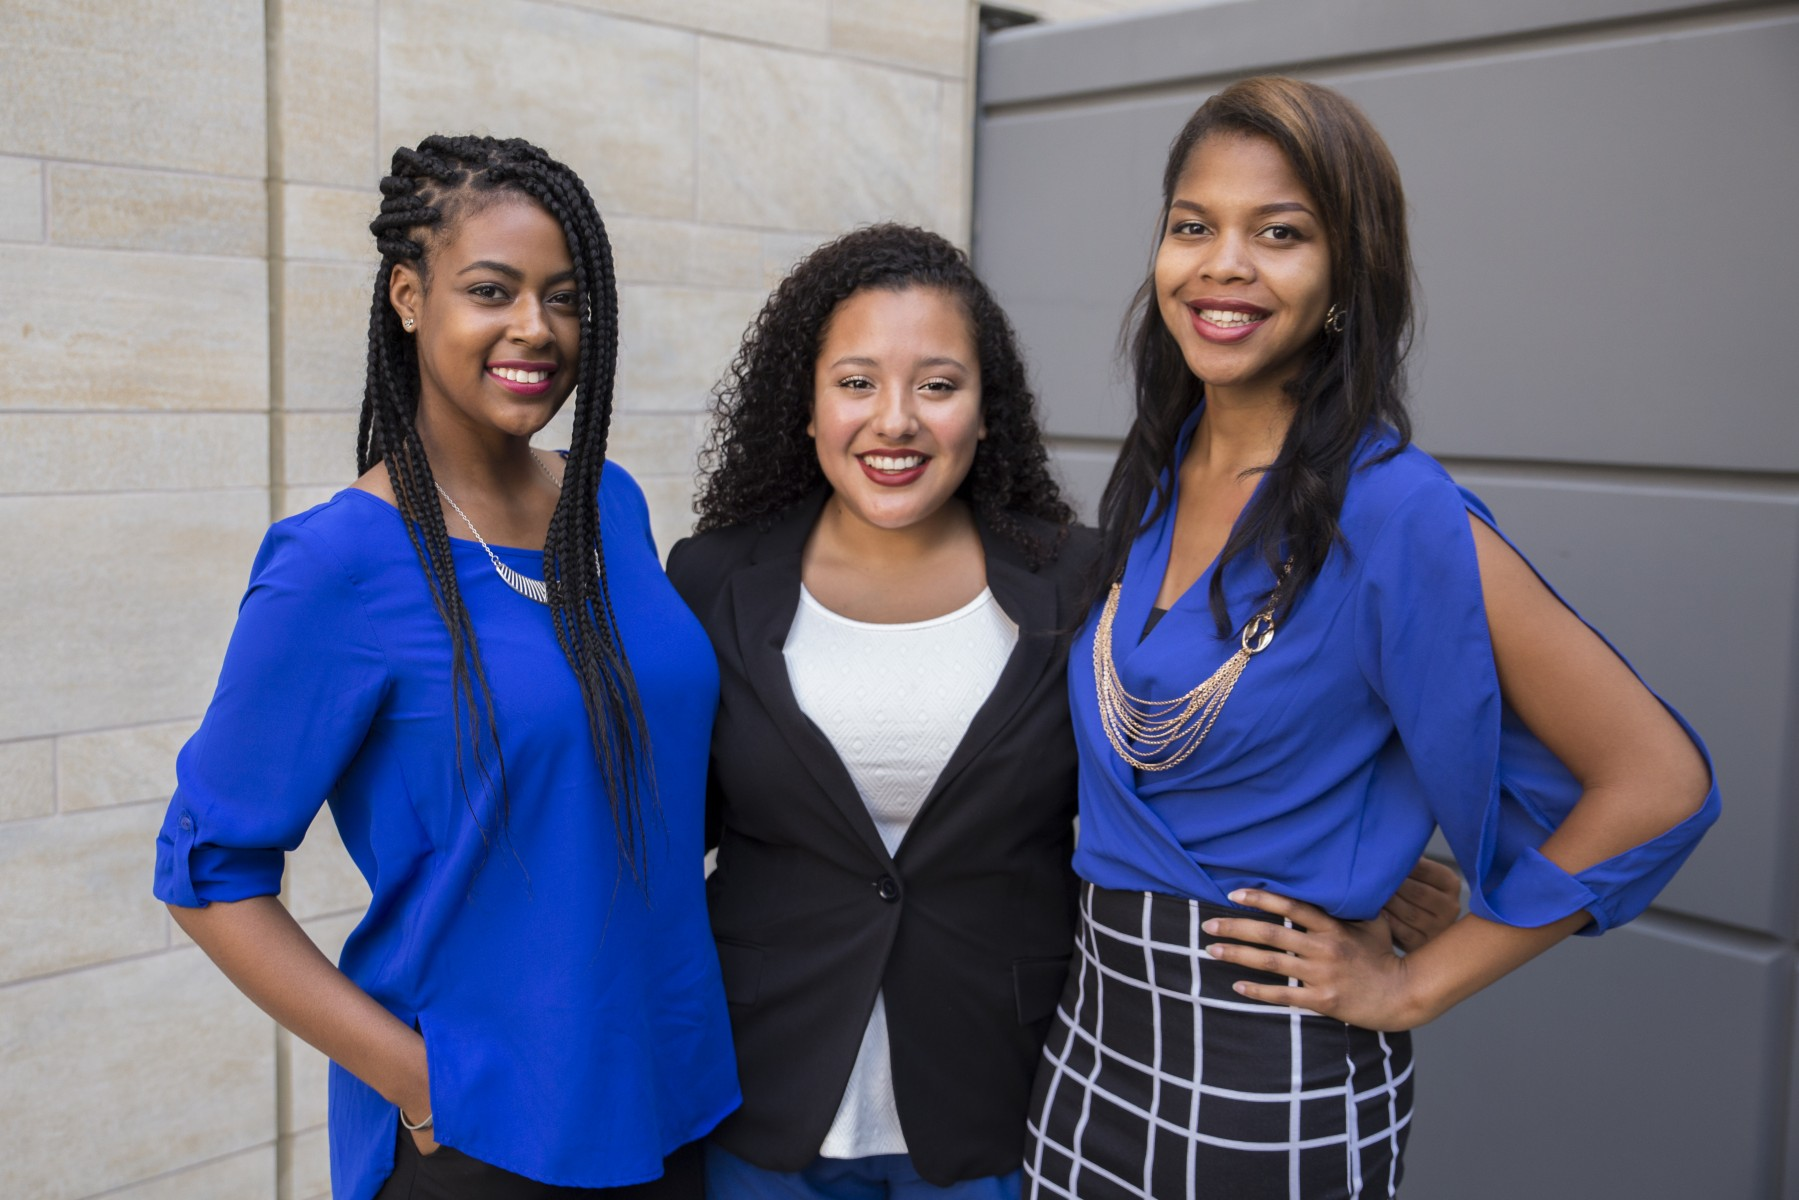 Boyd (left) was president of Associated Students, Inc., during the 2015-16 school year. She was part of an all-woman leadership team along with Bianca Garcia (center) and Jamaela Johnson.